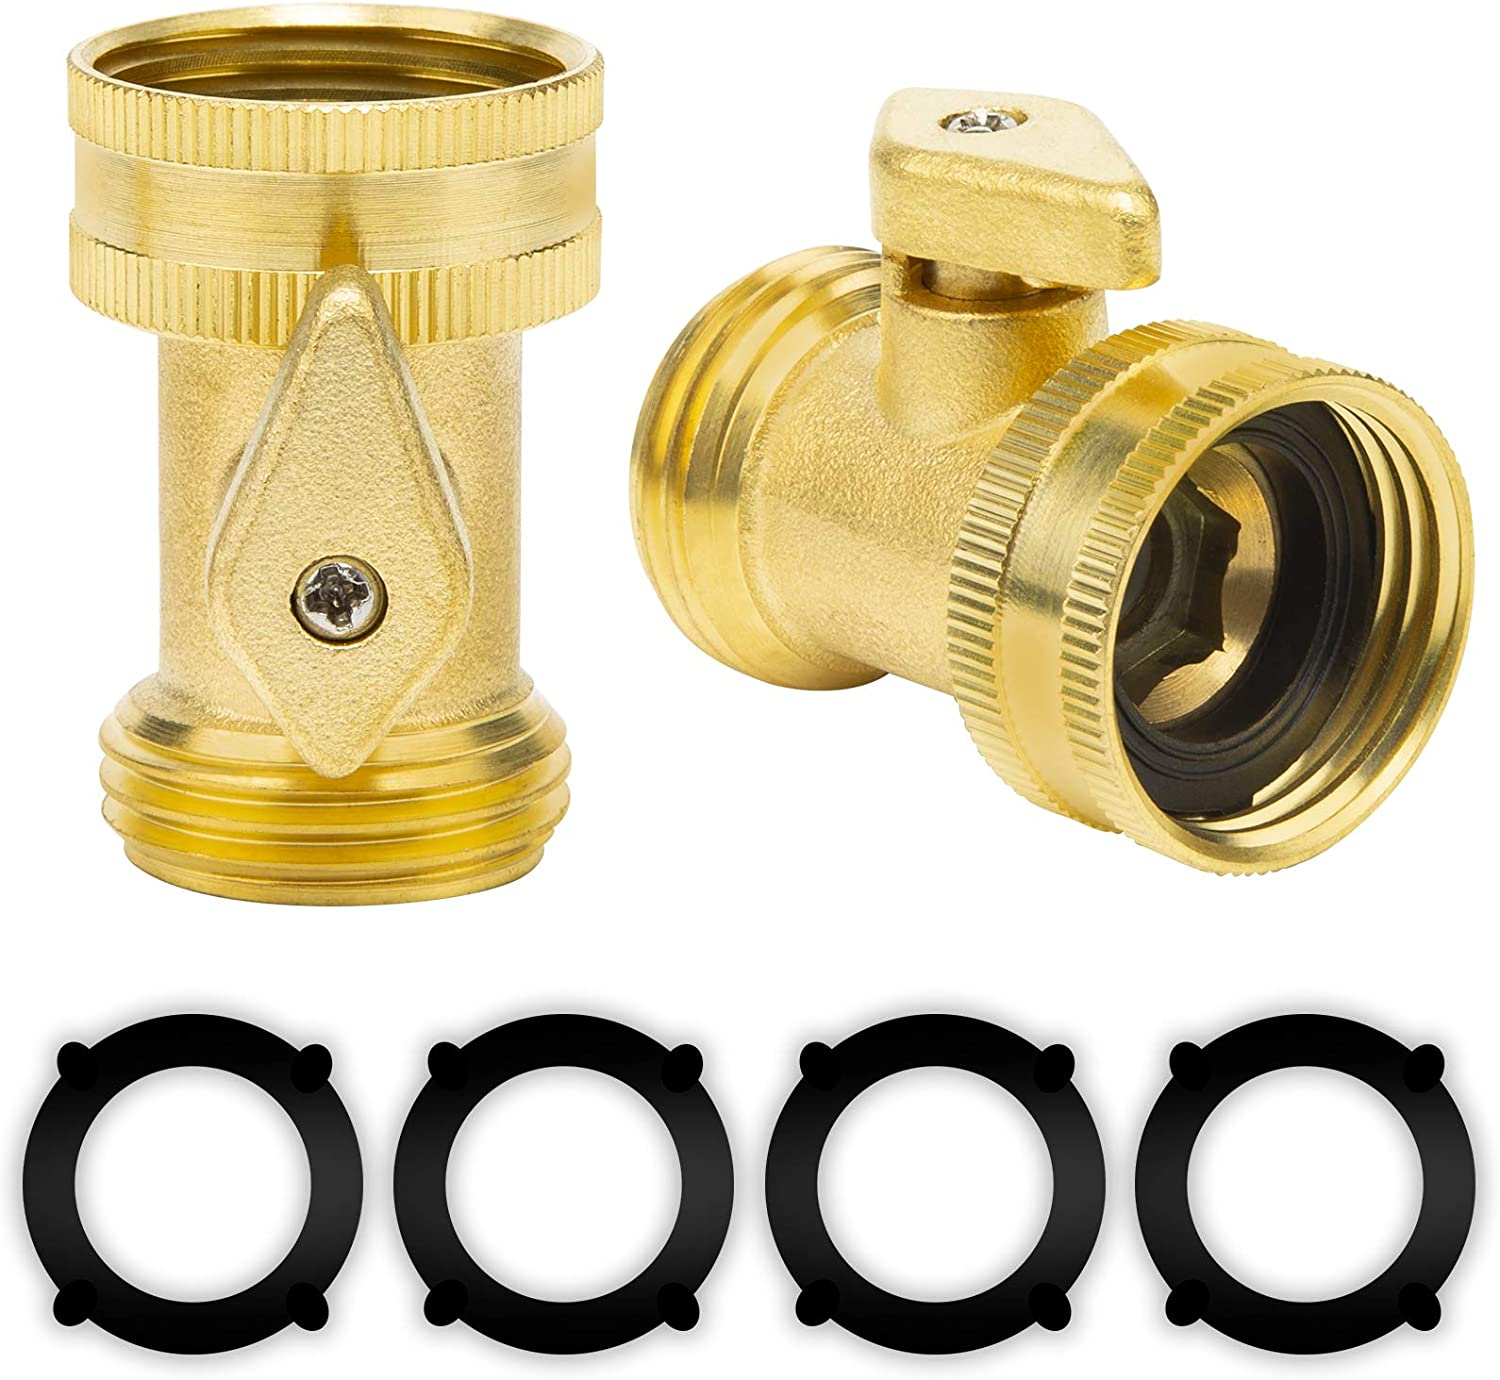 Oupeng sky Brass Garden Hose Shut Off Valve,Heavy Duty Brass Shut Off Valve Garden Hose Connector, 2 Pack Heavy Duty 3/4 Inch Solid Brass Garden Hose Shut Off Valve with 4 Extra Rubber Washers.